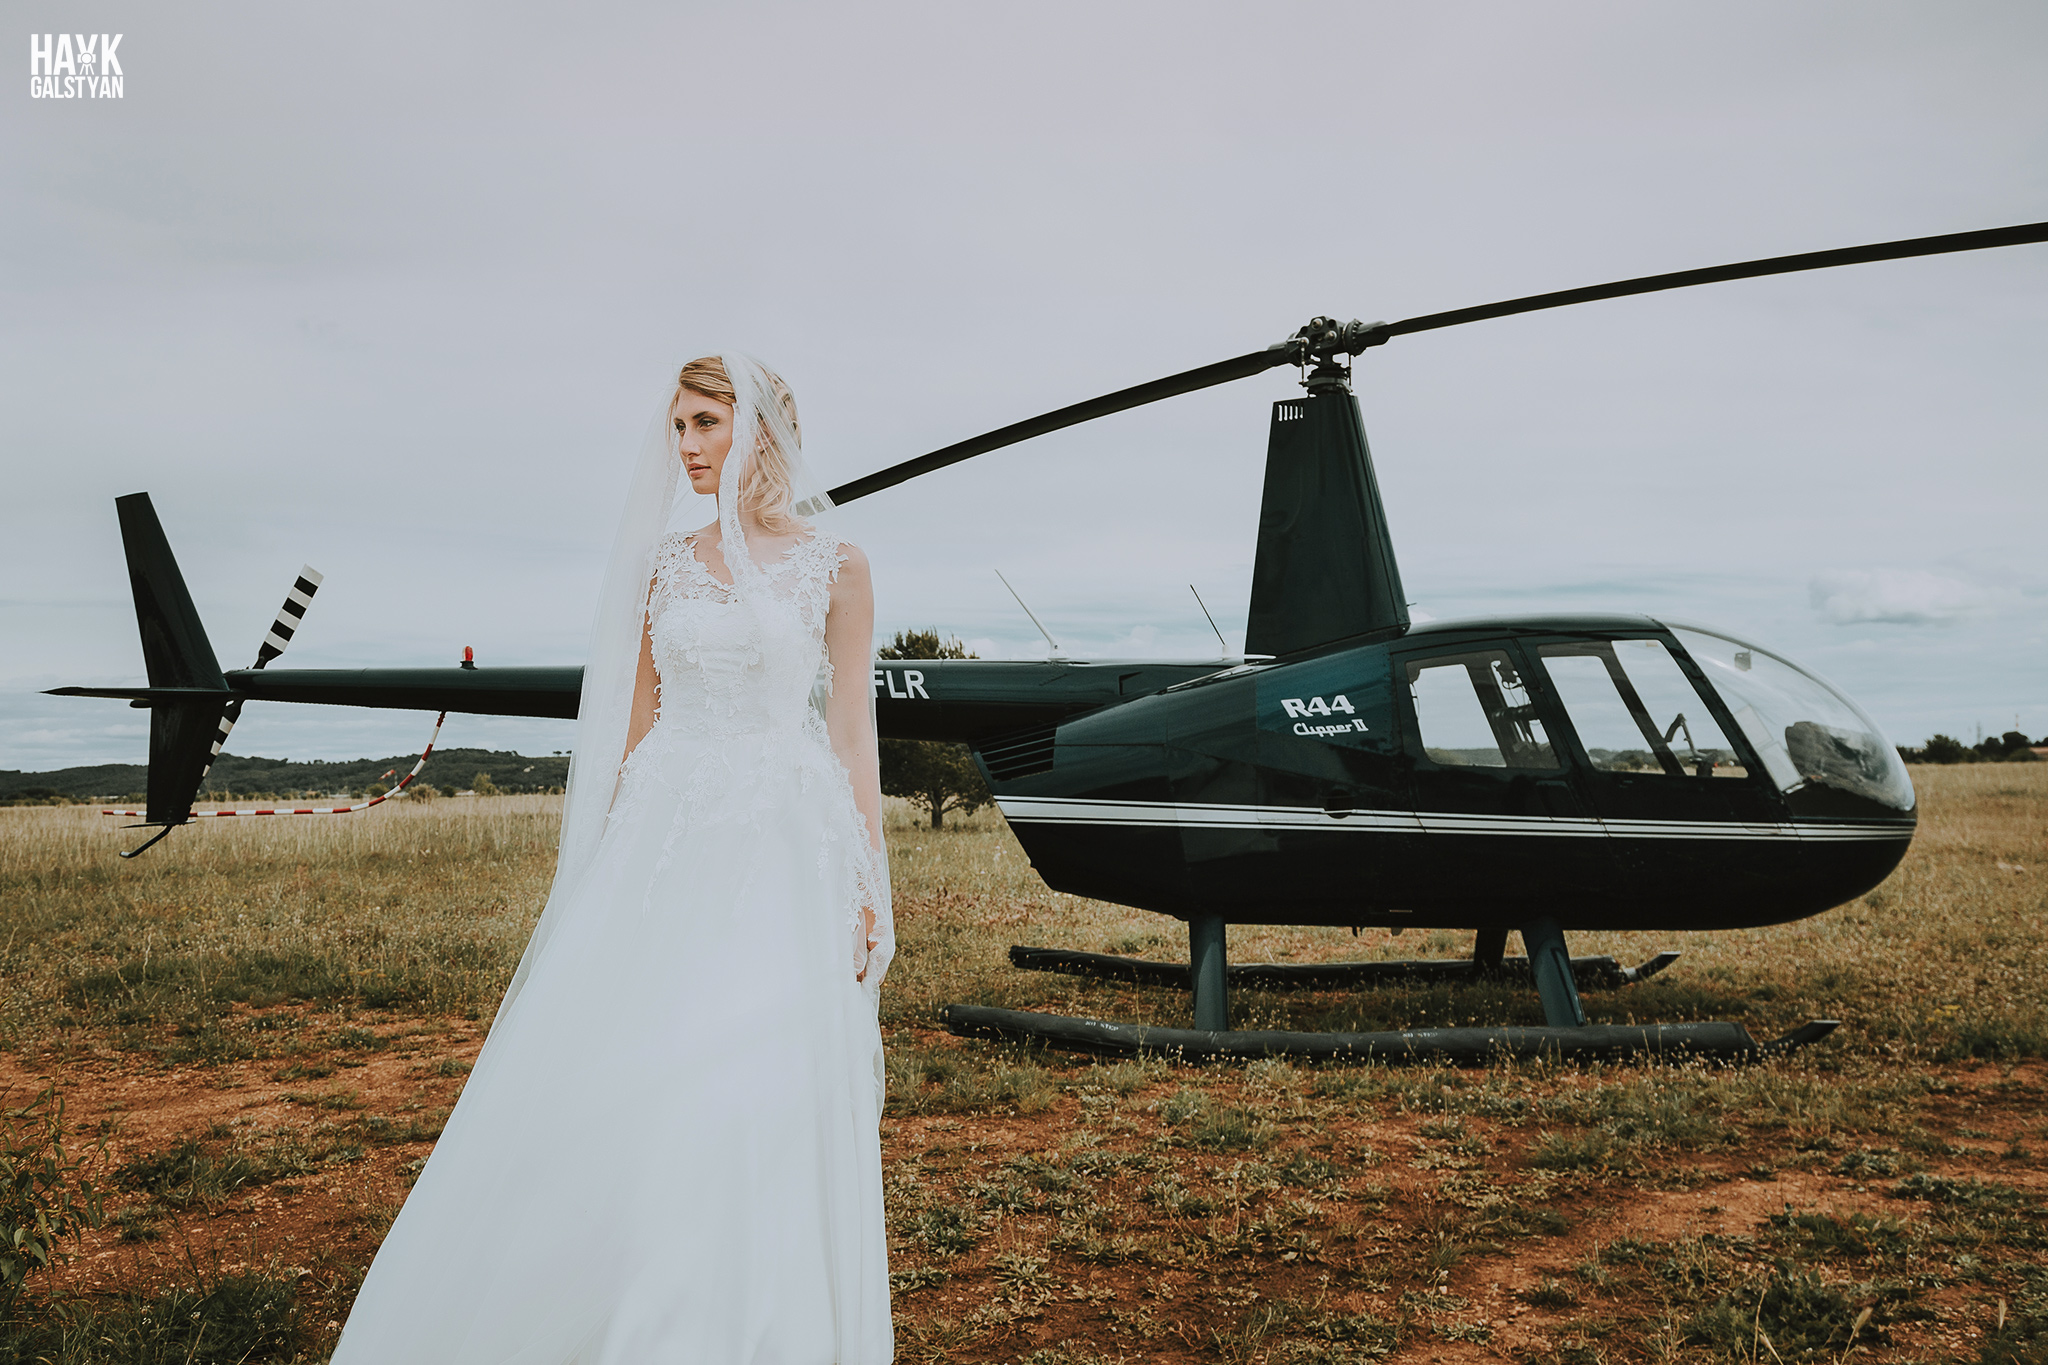 Bride with Helicopter France by Photographer Hayk Galstyan